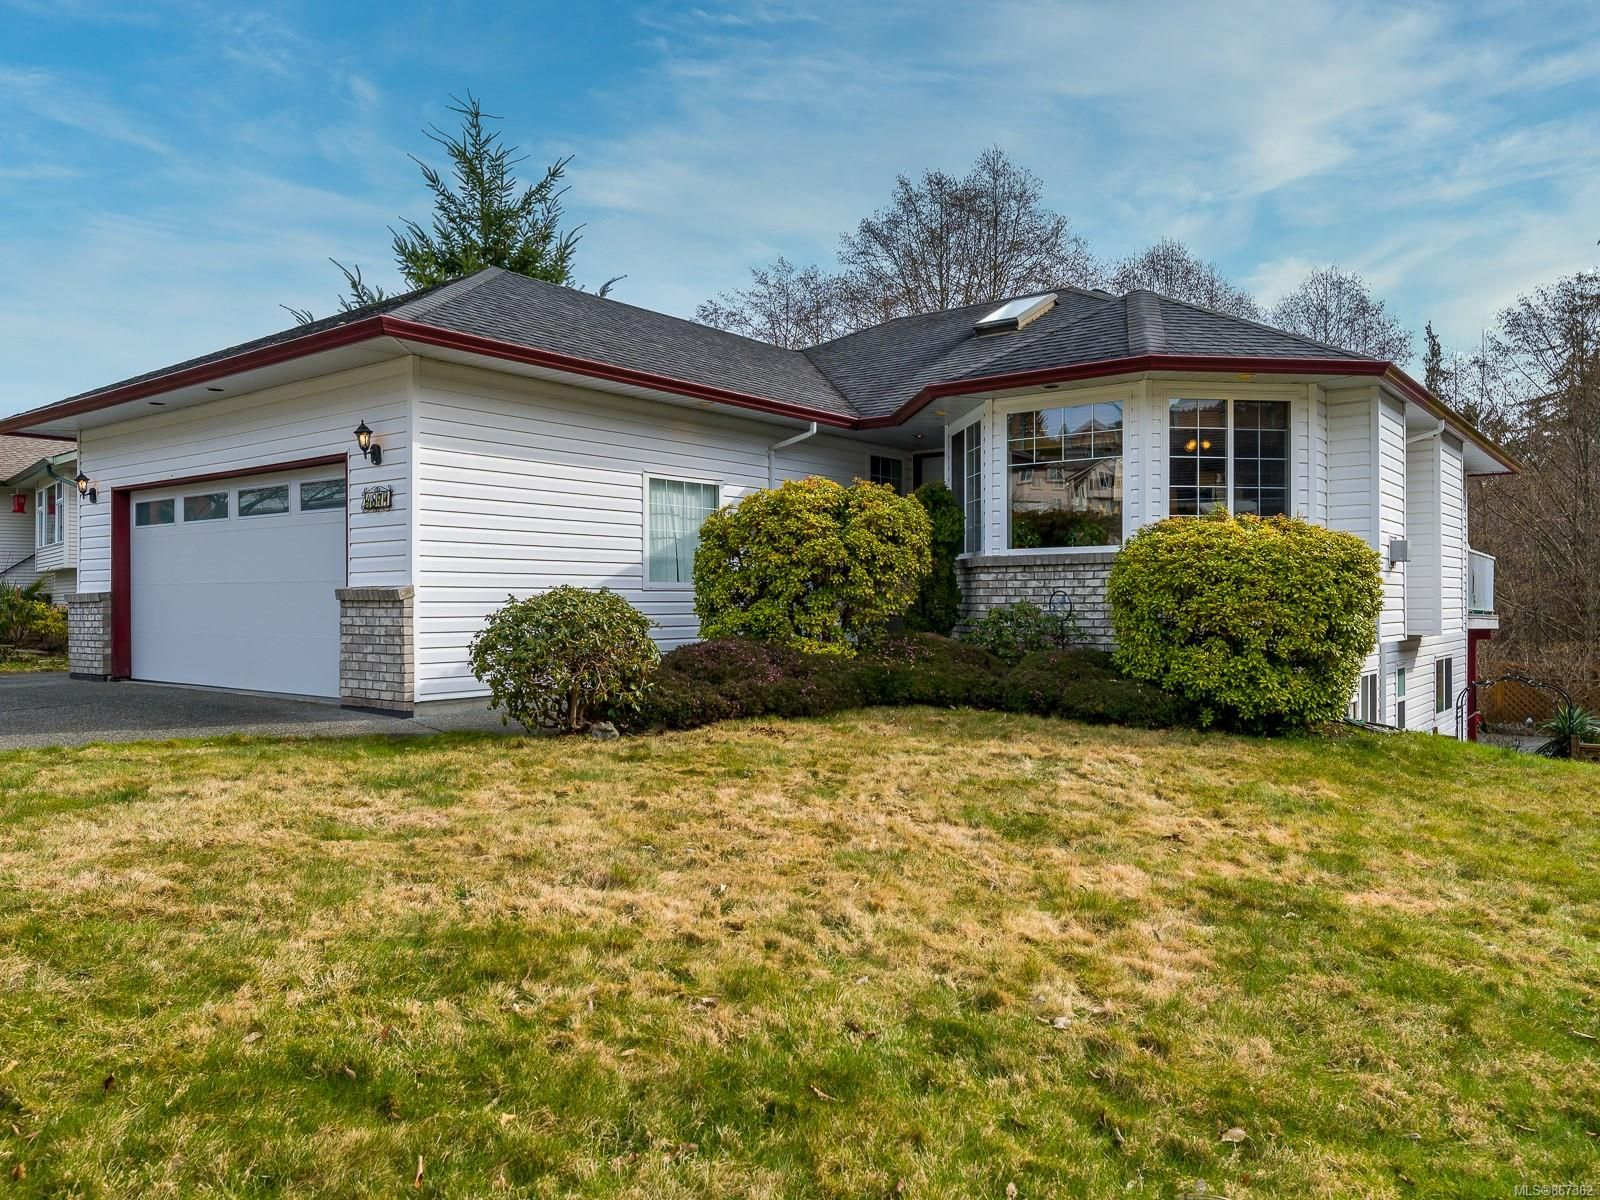 Main Photo: 4871 NW Logan's Run in : Na North Nanaimo House for sale (Nanaimo)  : MLS®# 867362